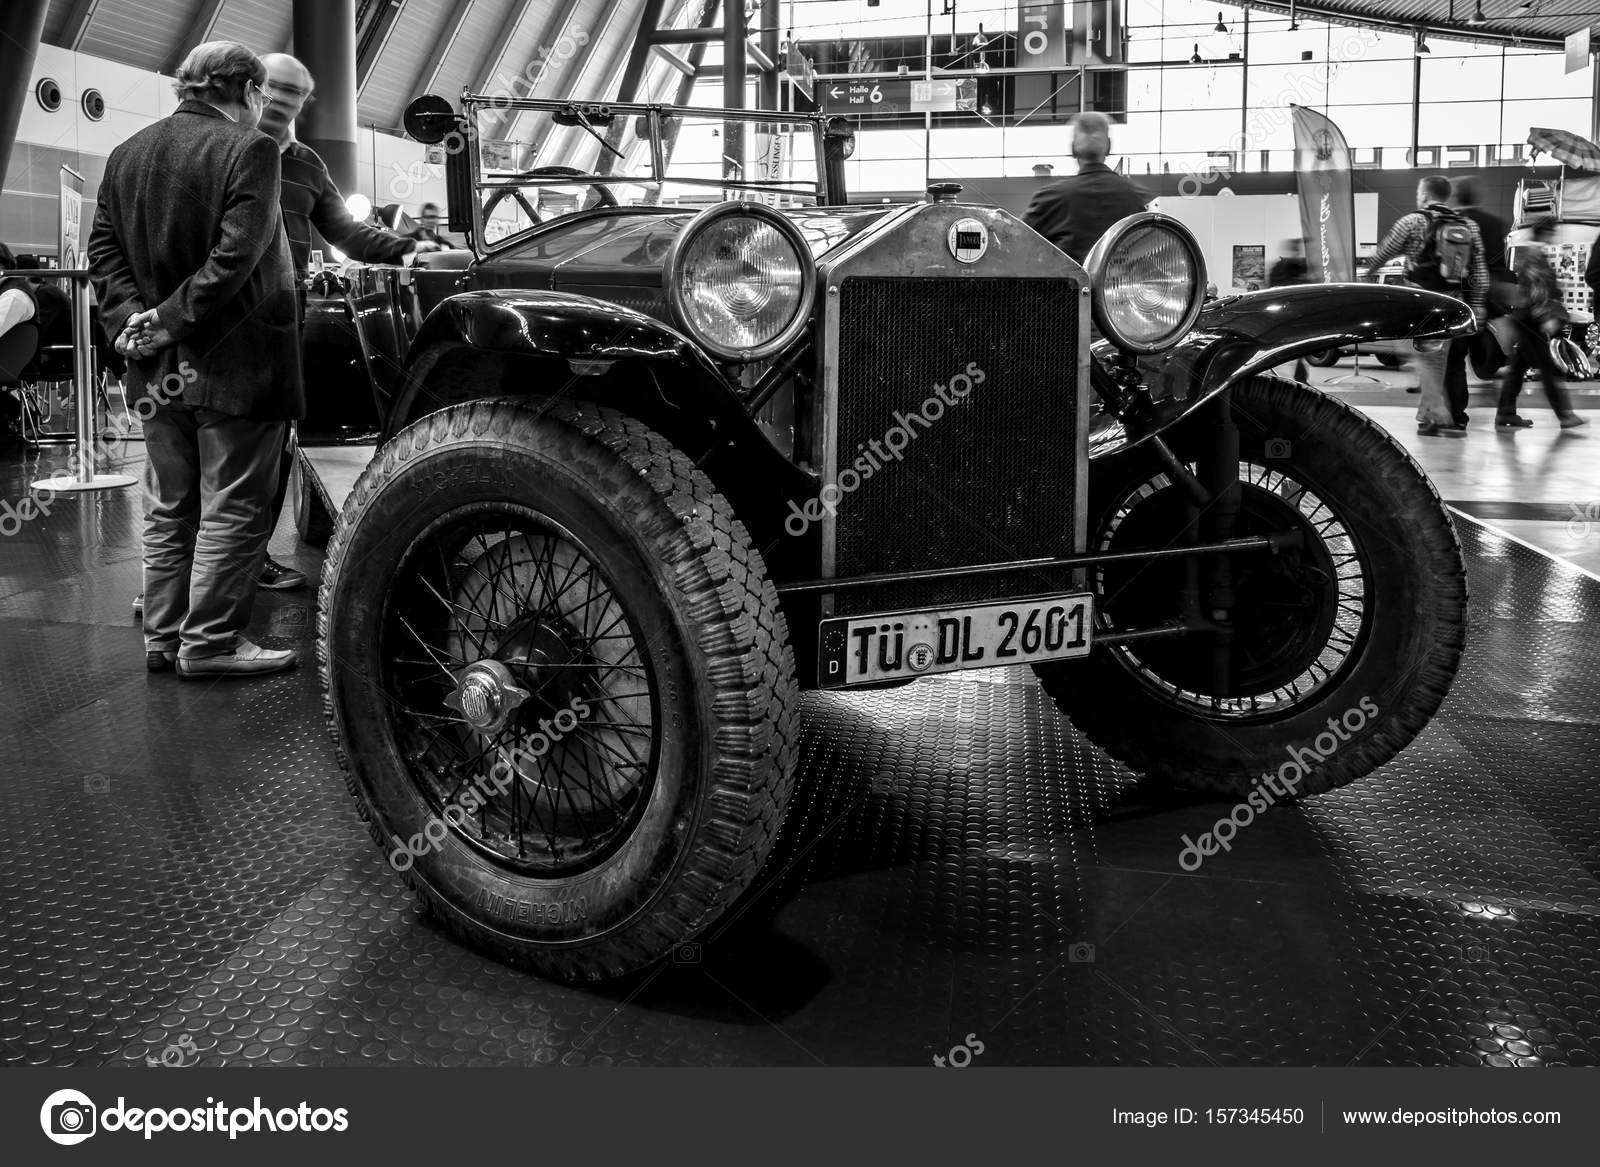 https://st3.depositphotos.com/1705215/15734/i/1600/depositphotos_157345450-stock-photo-retro-car-lancia-lambda-serie.jpg